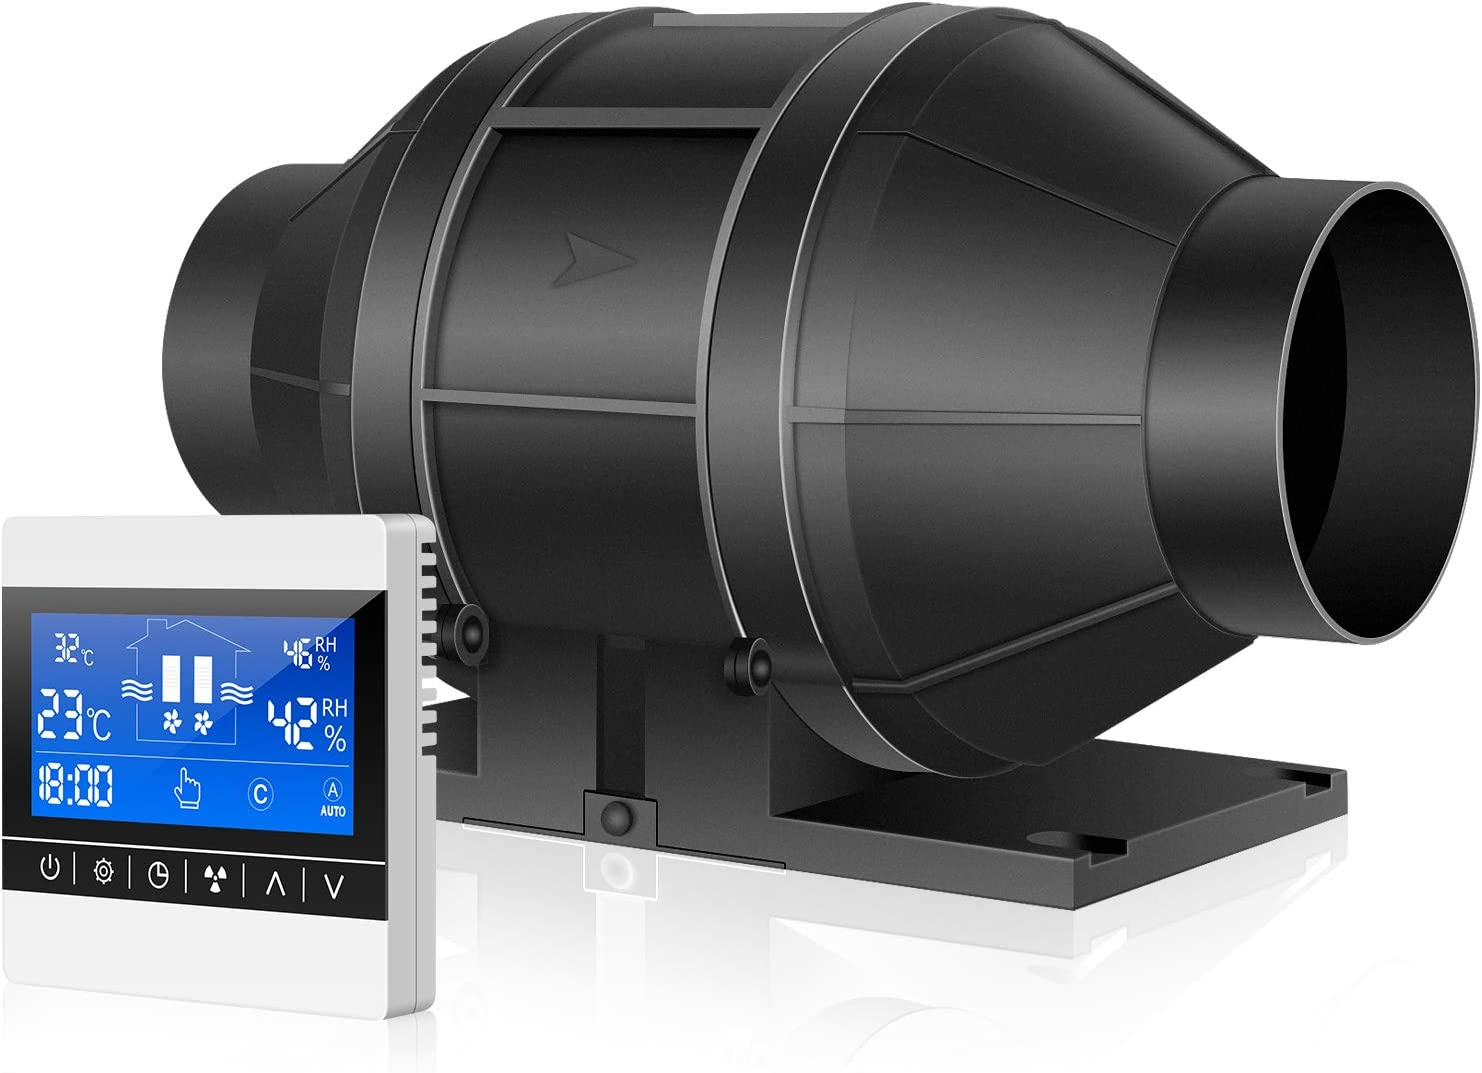 iPower 4 Inch 130 CFM Inline Duct Fan with Speed Humidity Temperature Controller for Grow Tent Ventilation, 4